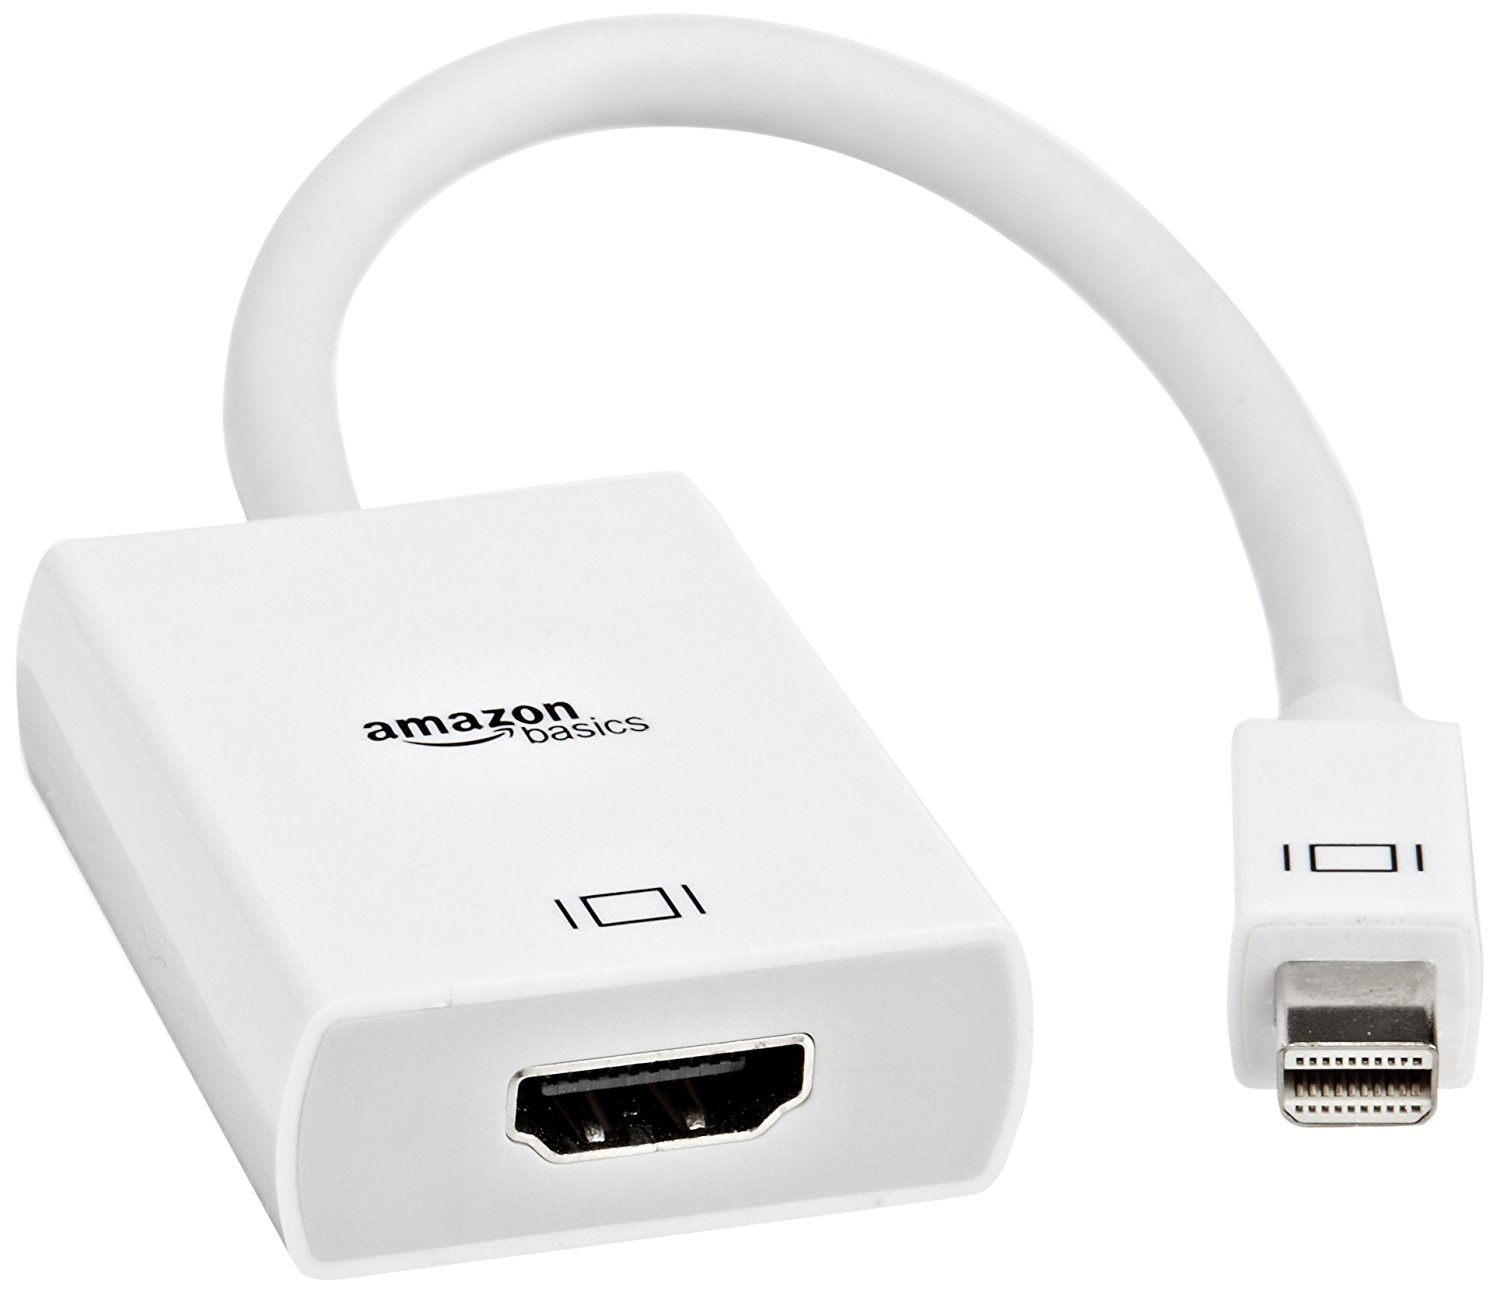 HDMI Adapter